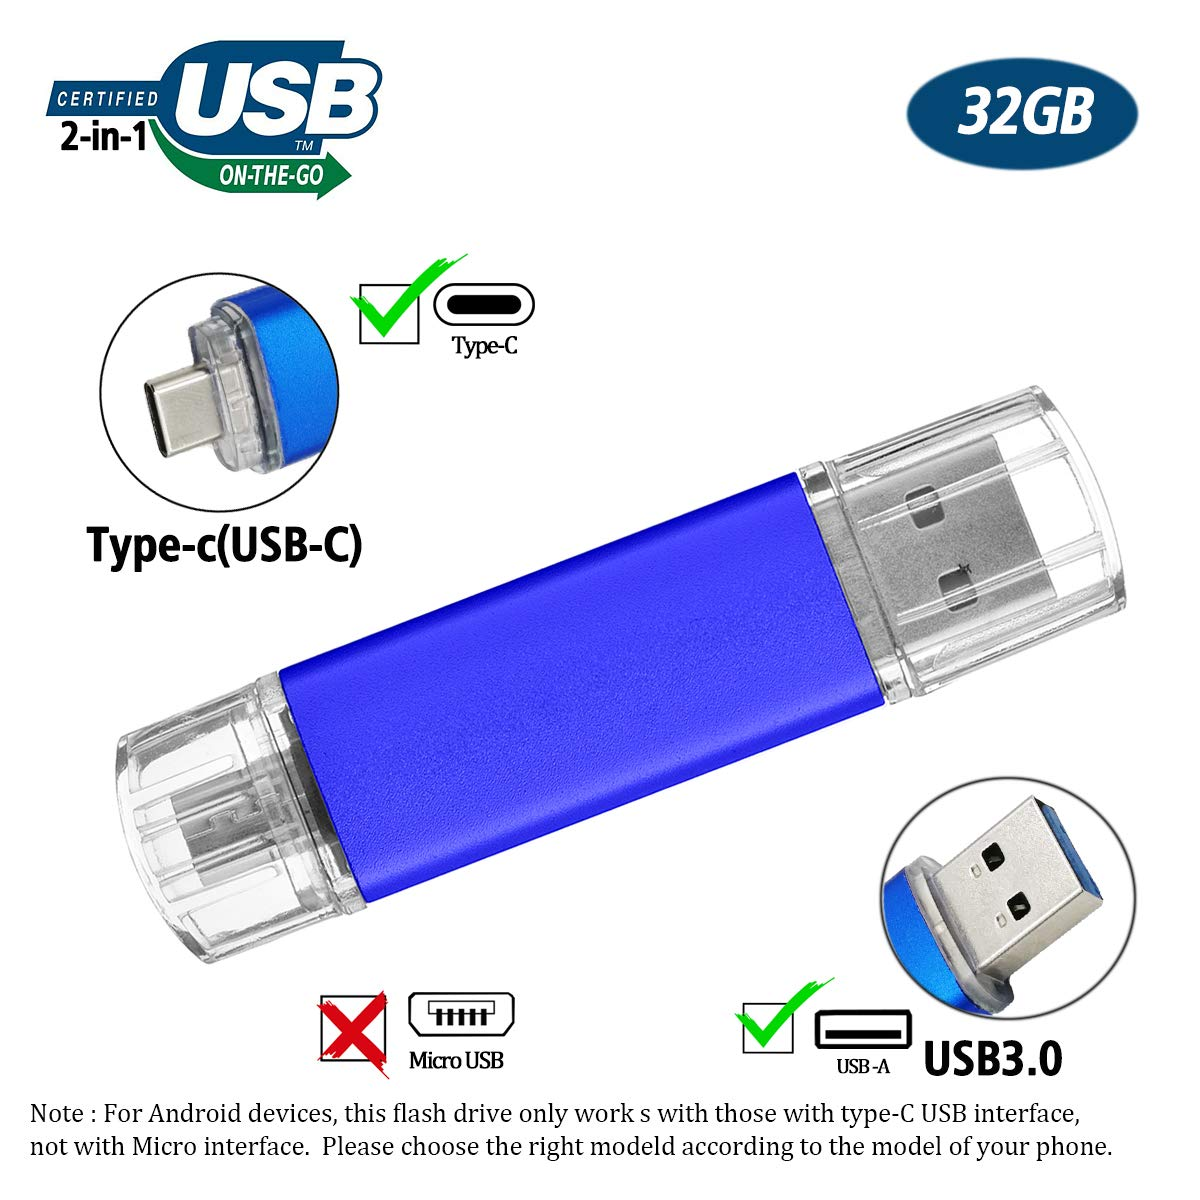 DZ533 USB Data Sync Charger Cable 10ft  for Samsung Galaxy Tab Tablet 8.9 10.1 ^